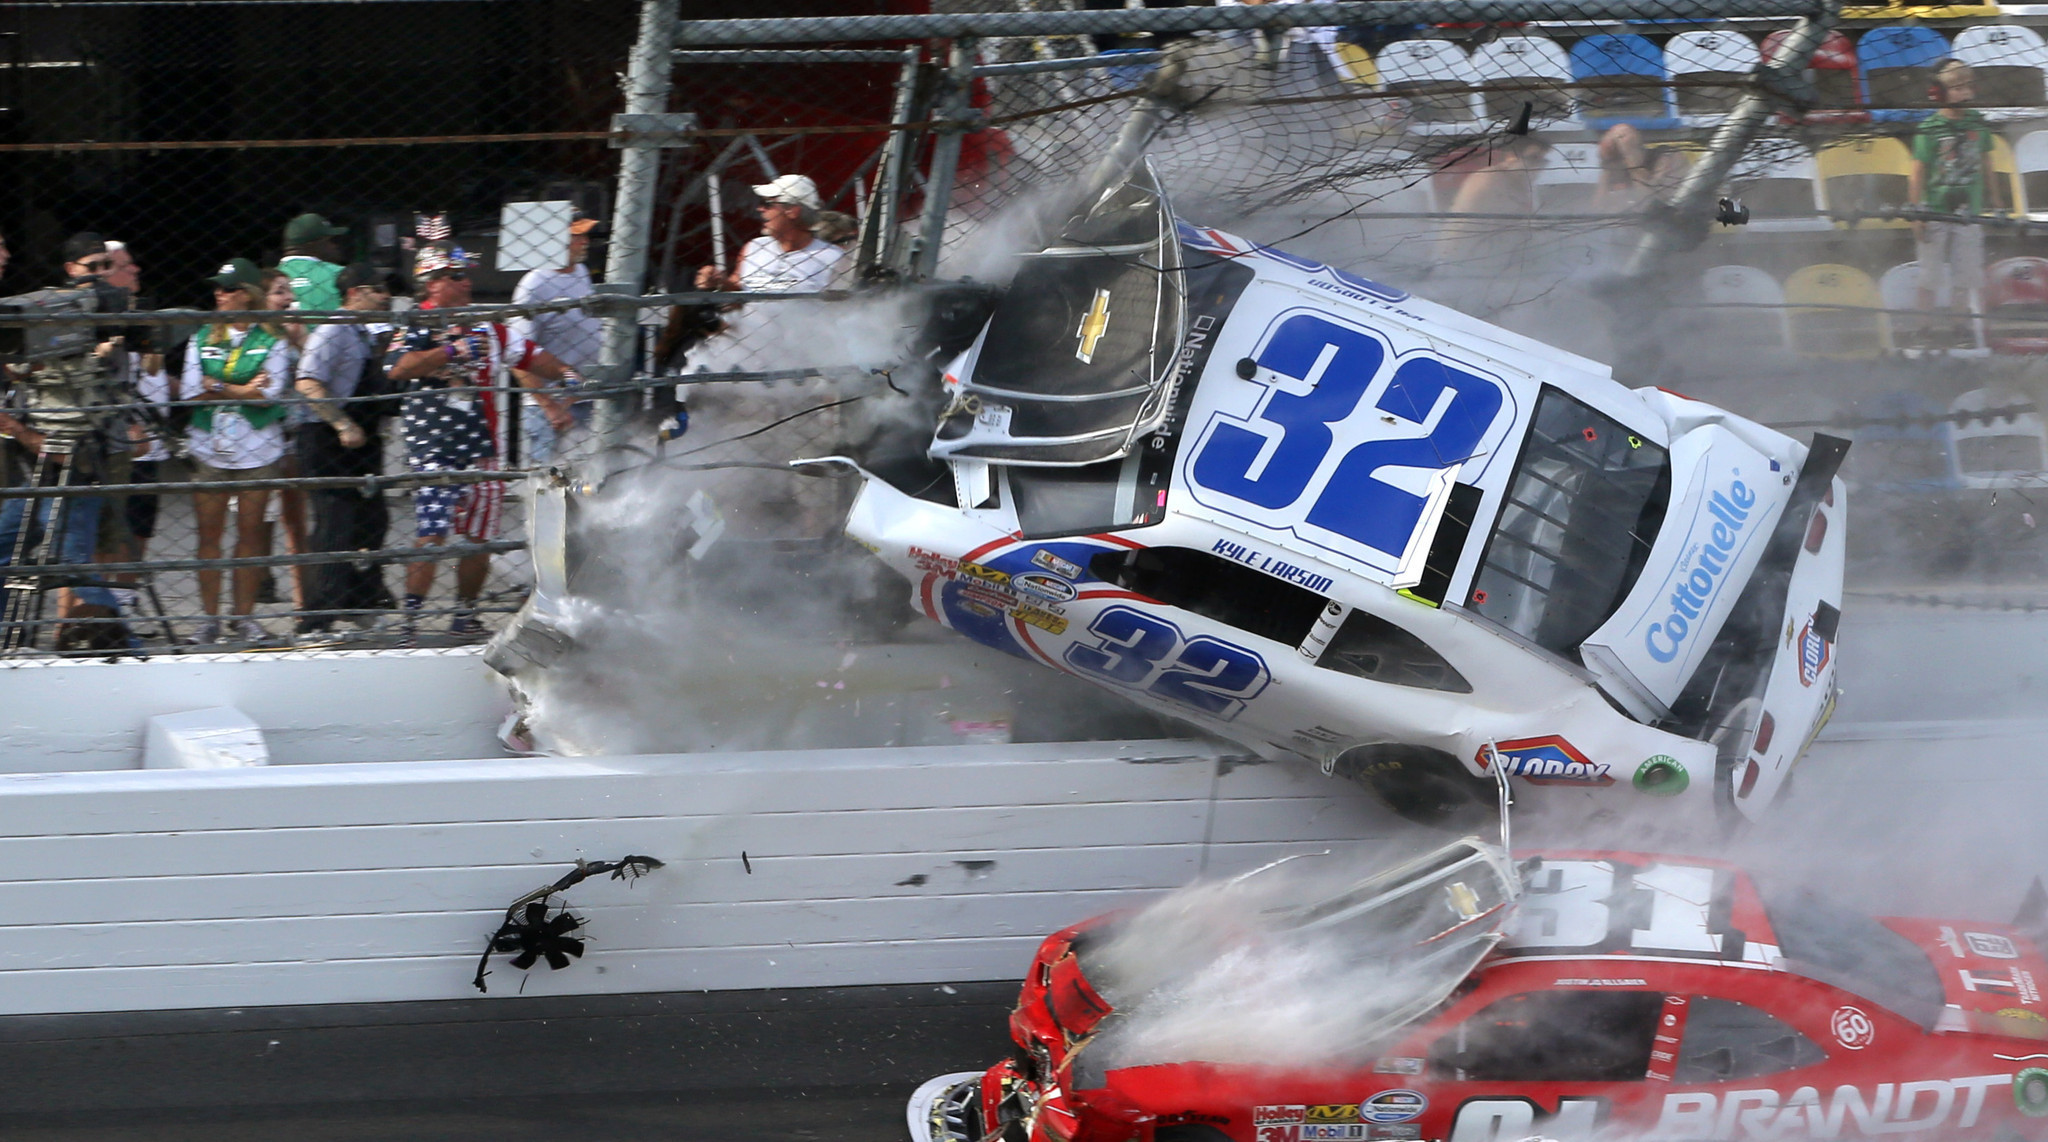 Pictures: NASCAR crash photos - Orlando Sentinel